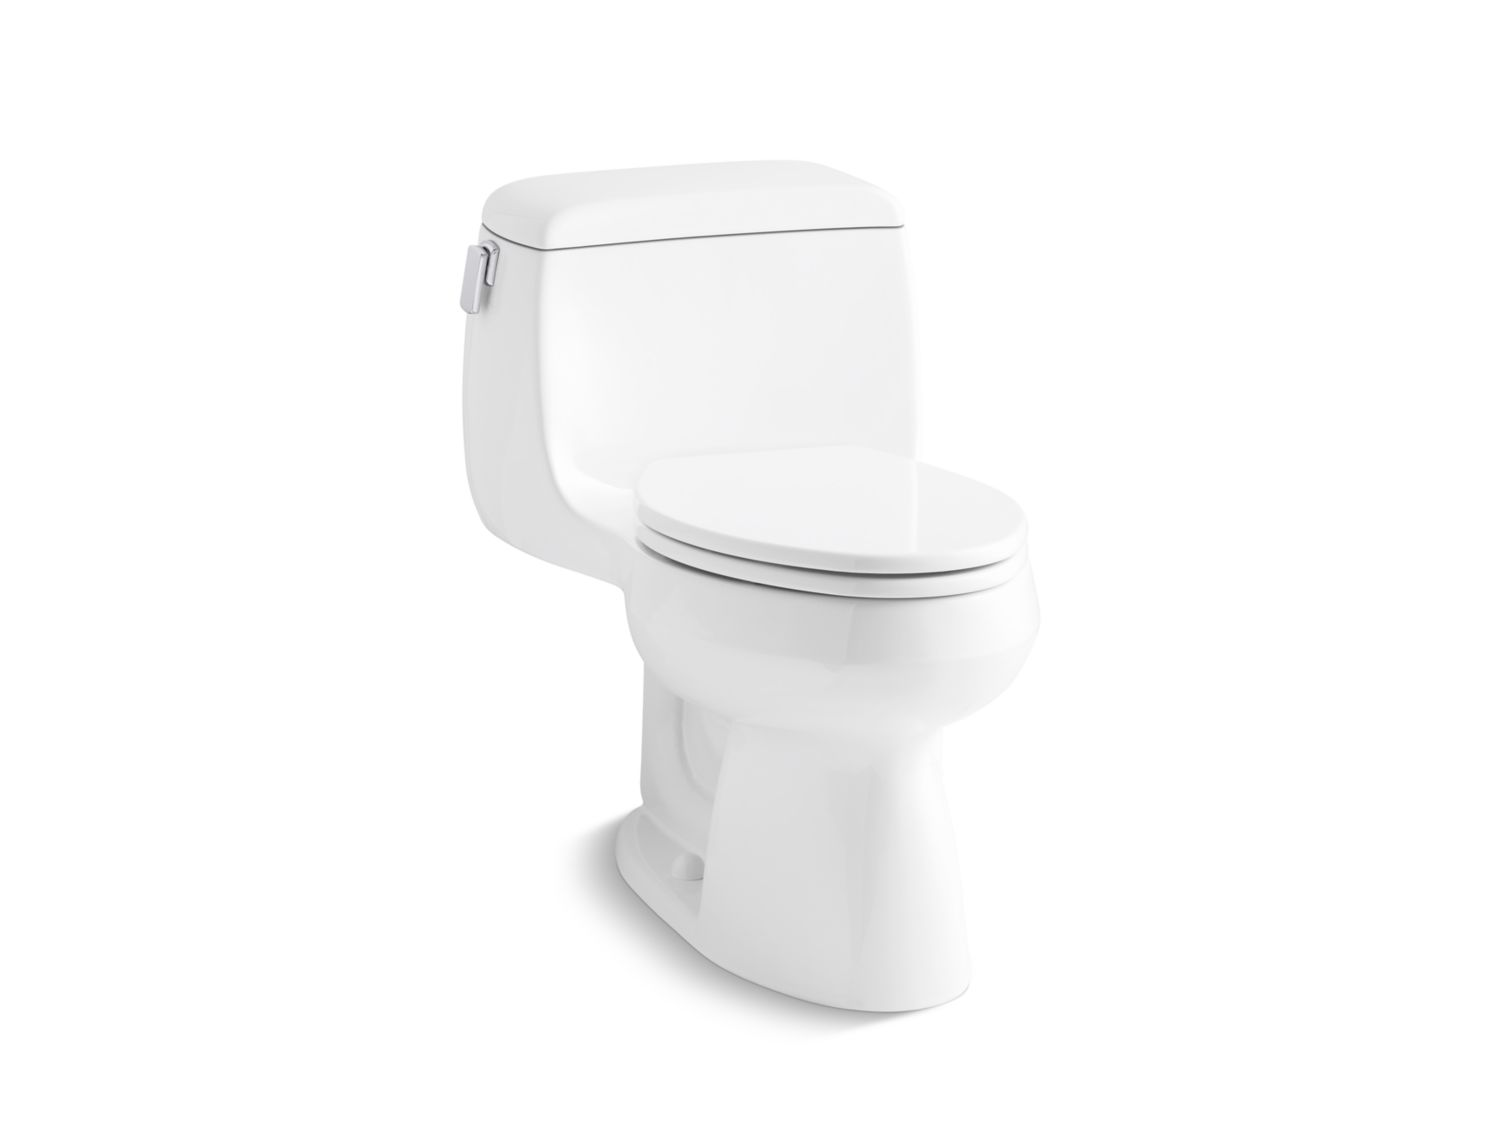 Persephone One-Piece High-Efficiency Toilet, Less Seat | P70350-00 ...